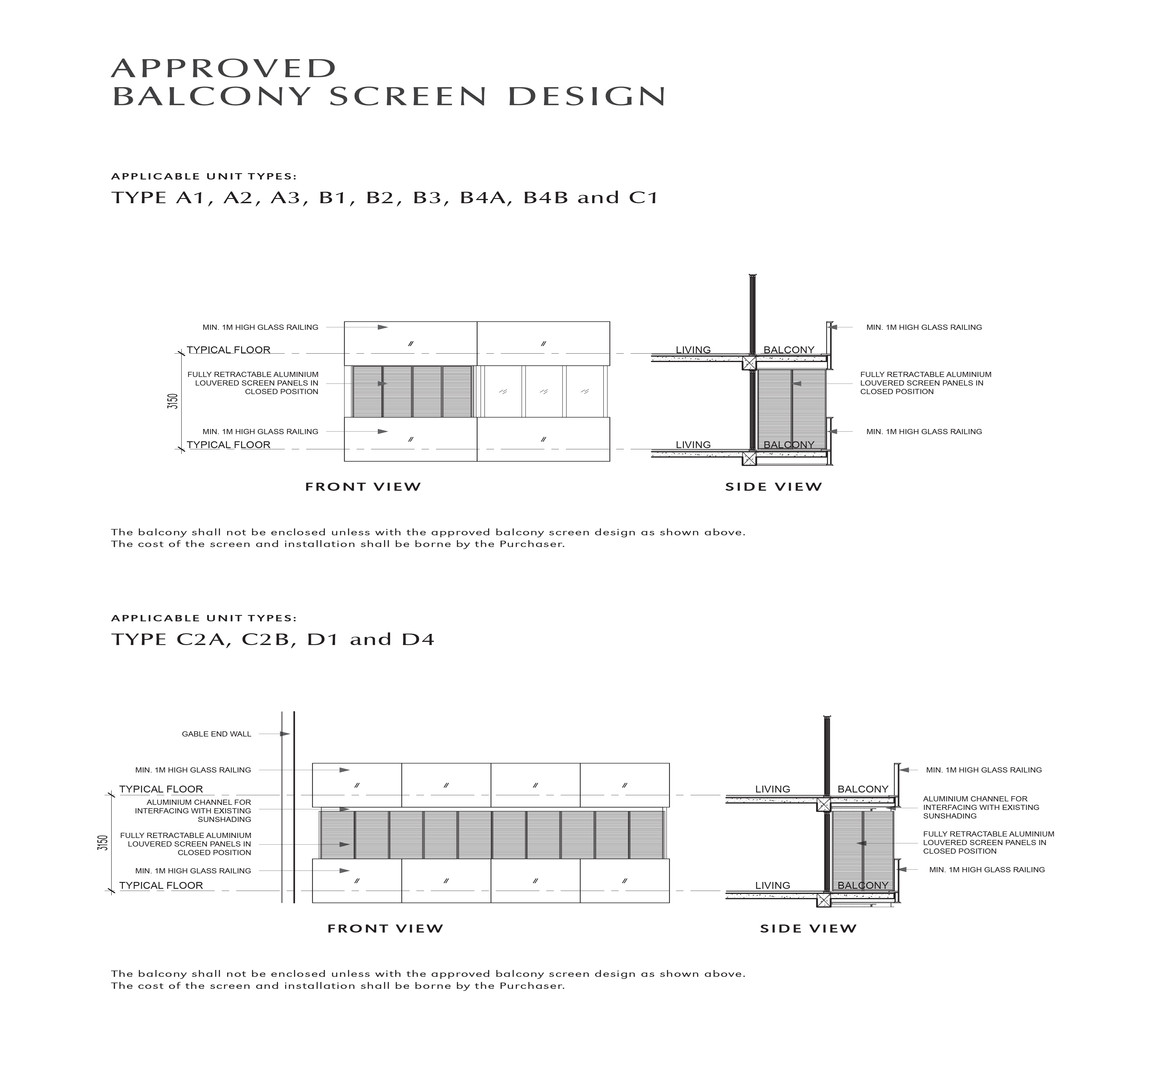 Balcony Screen Design.jpg